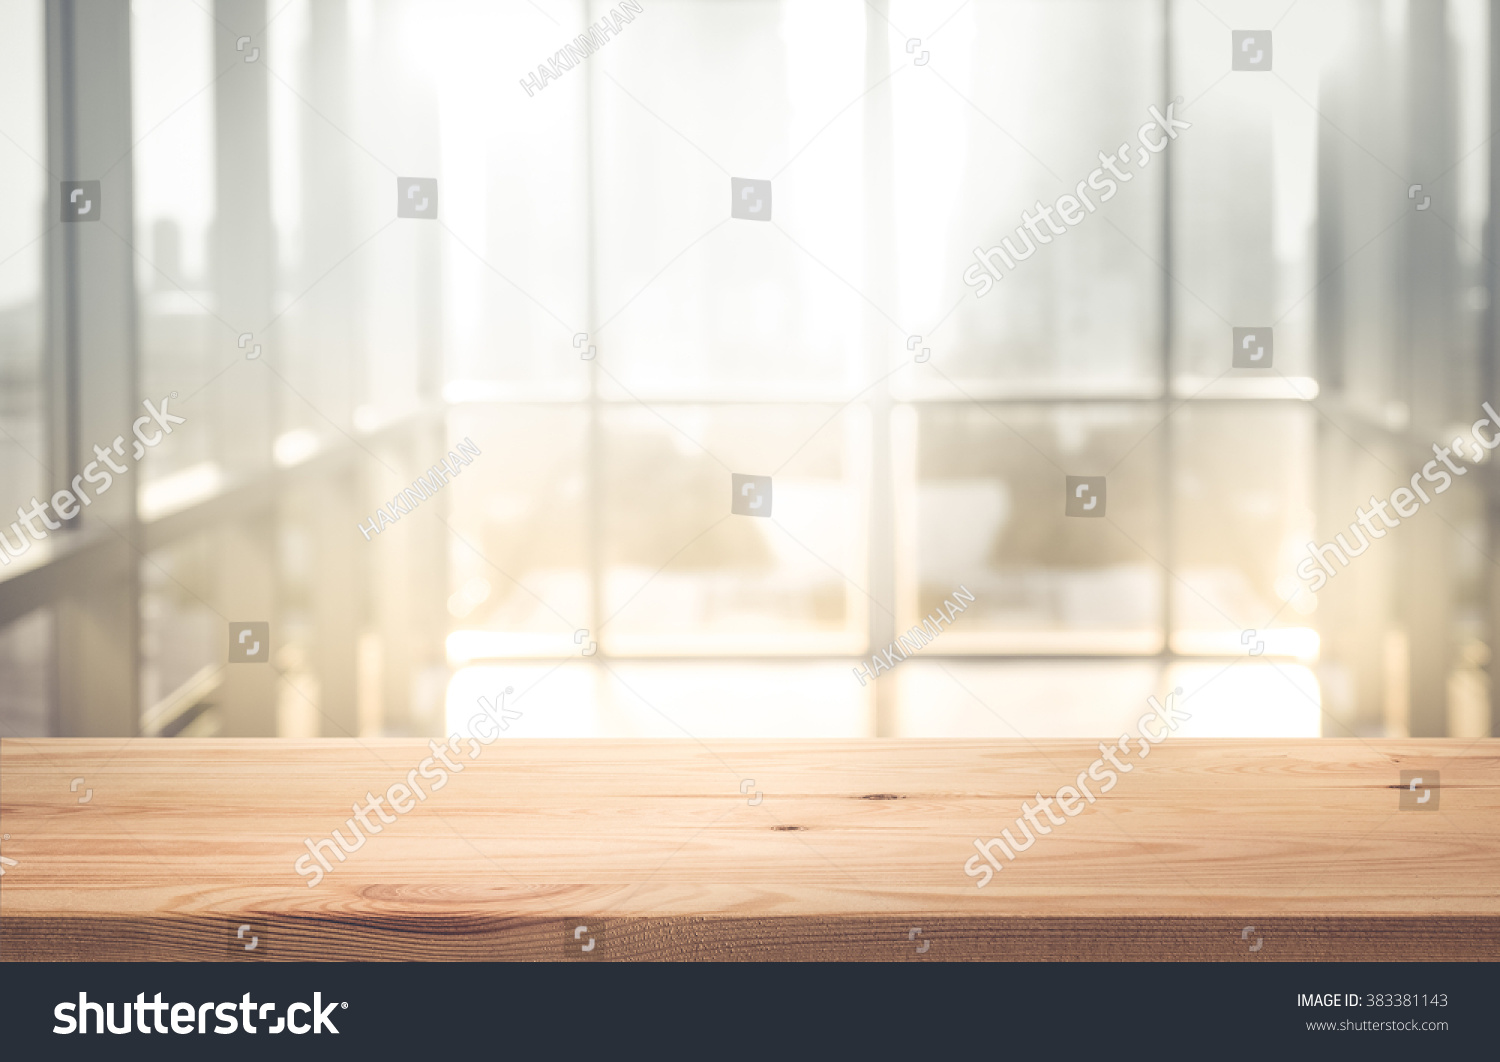 Empty living room with large windows can be as background stock - Empty Living Room With Large Windows Can Be As Background Stock Empty The Top Of Download